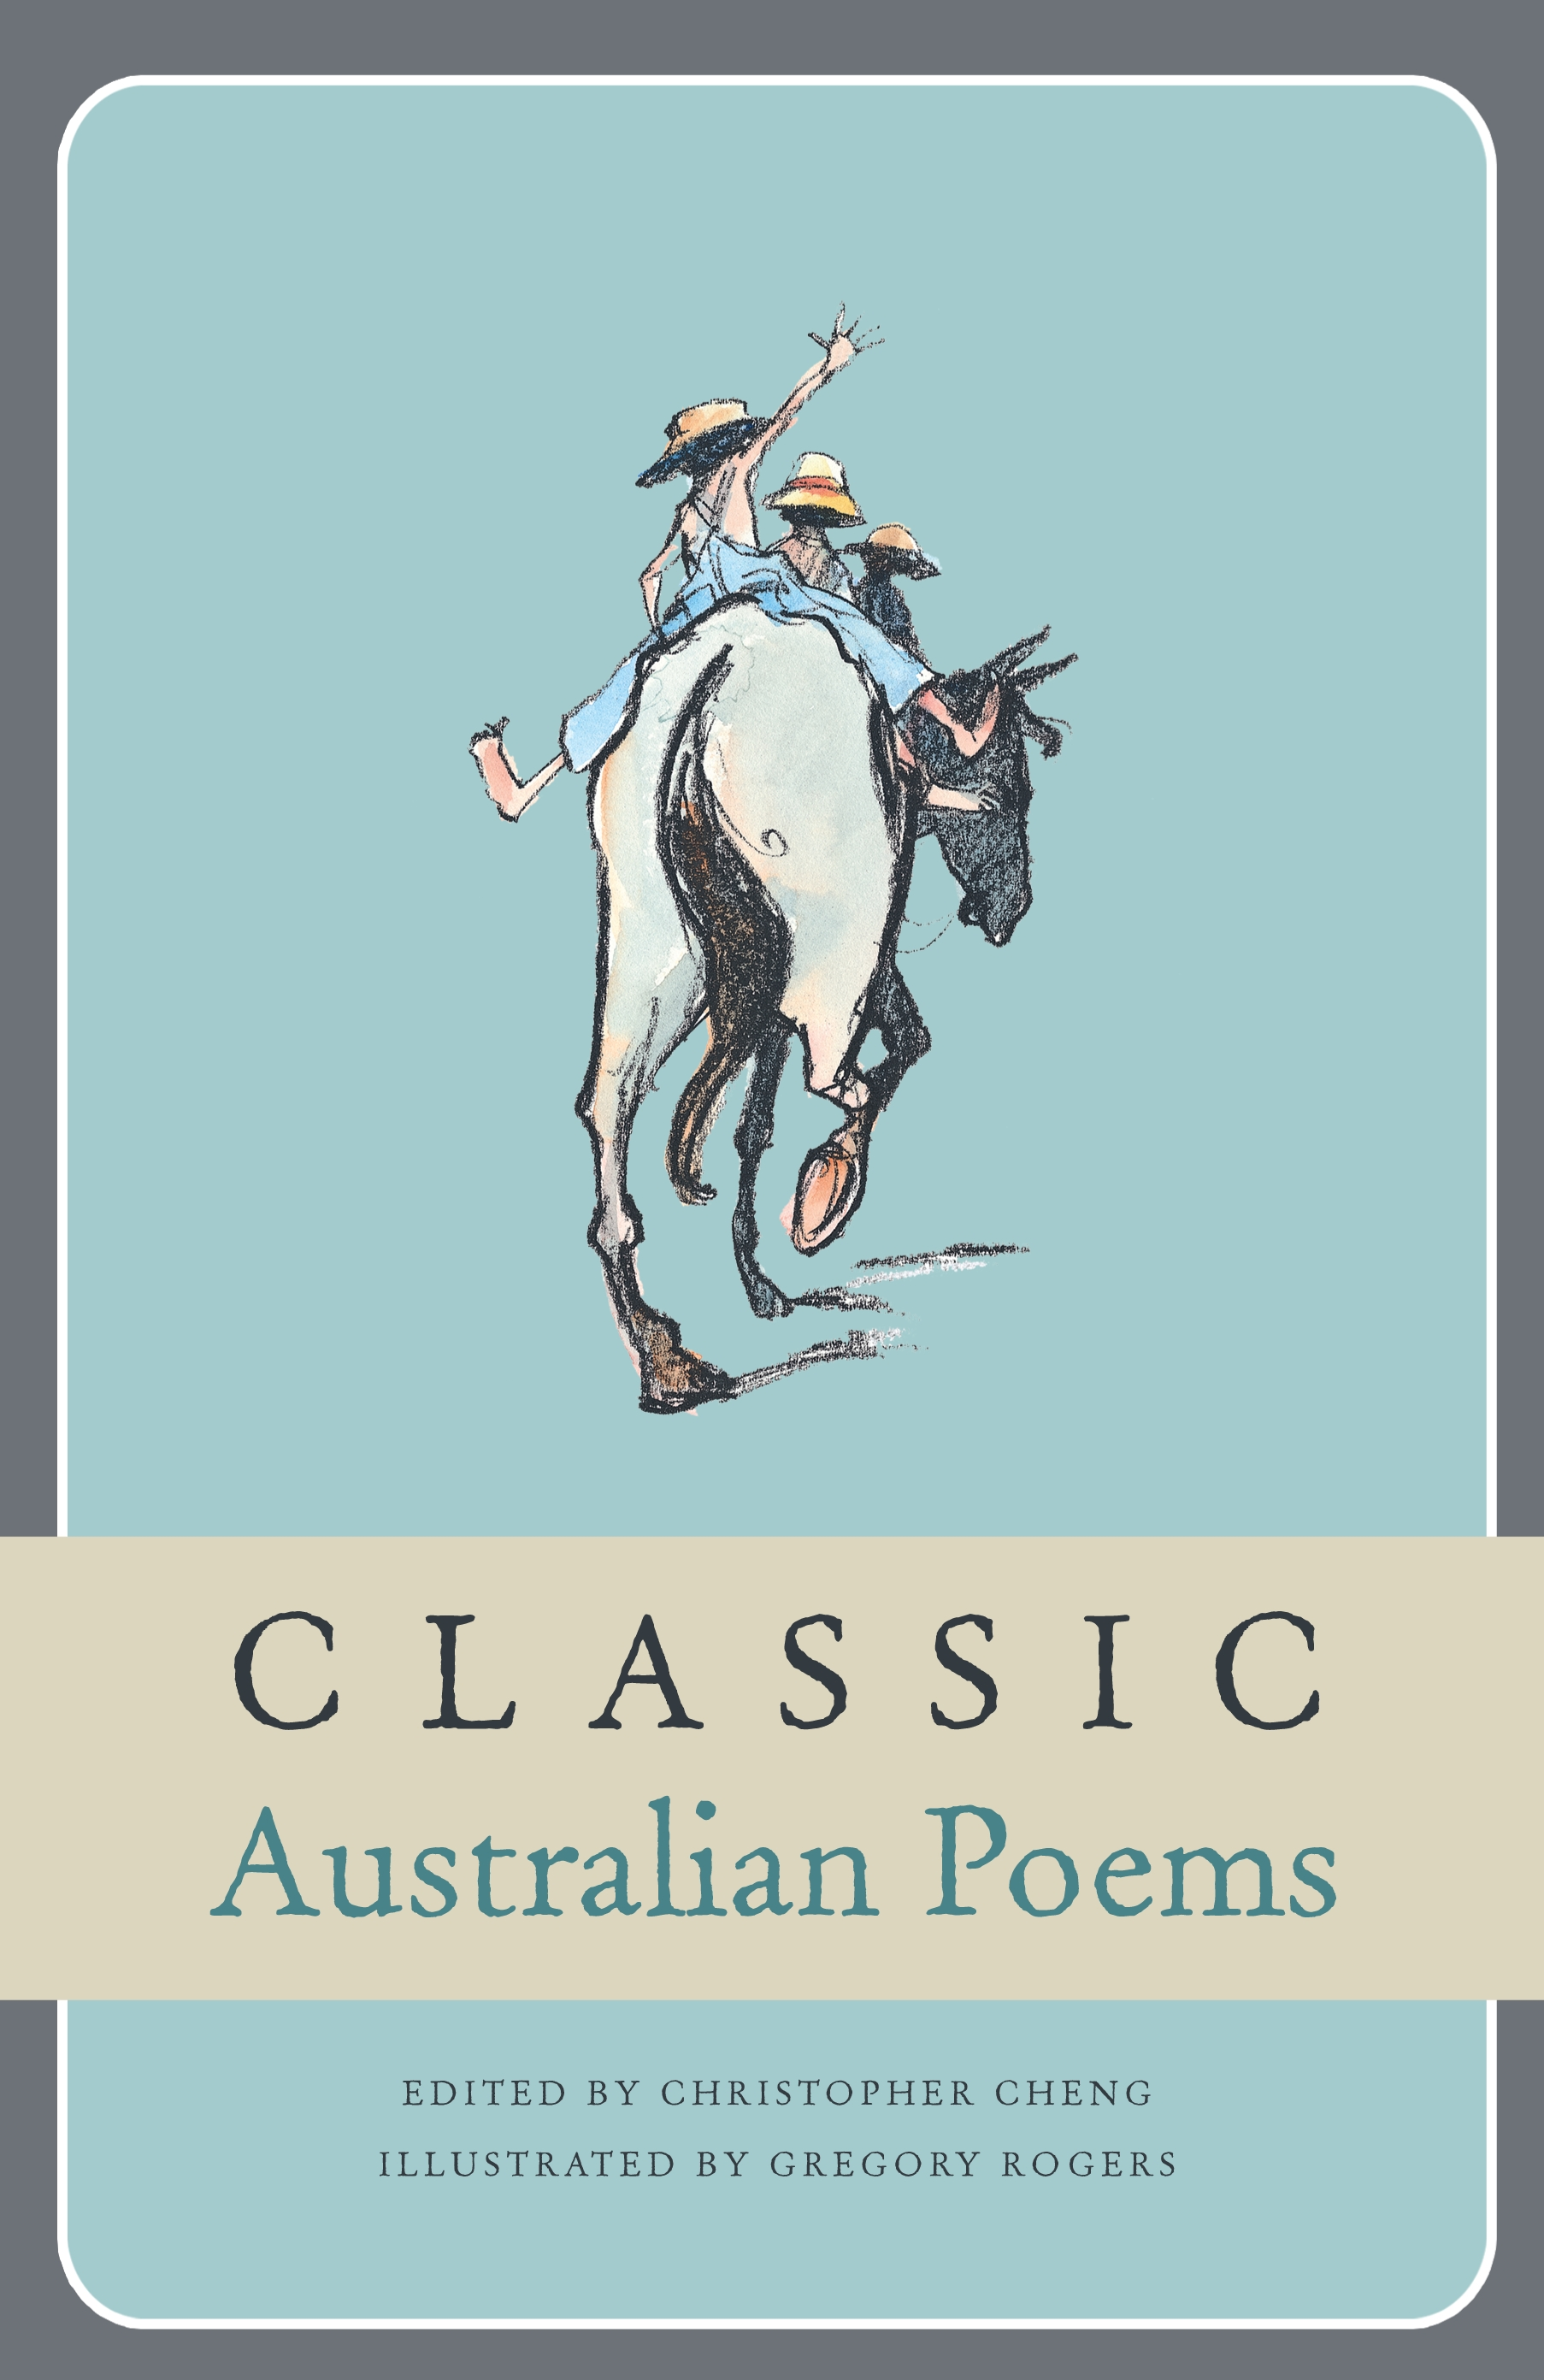 Classic Australian Poems by Christopher Cheng - Penguin